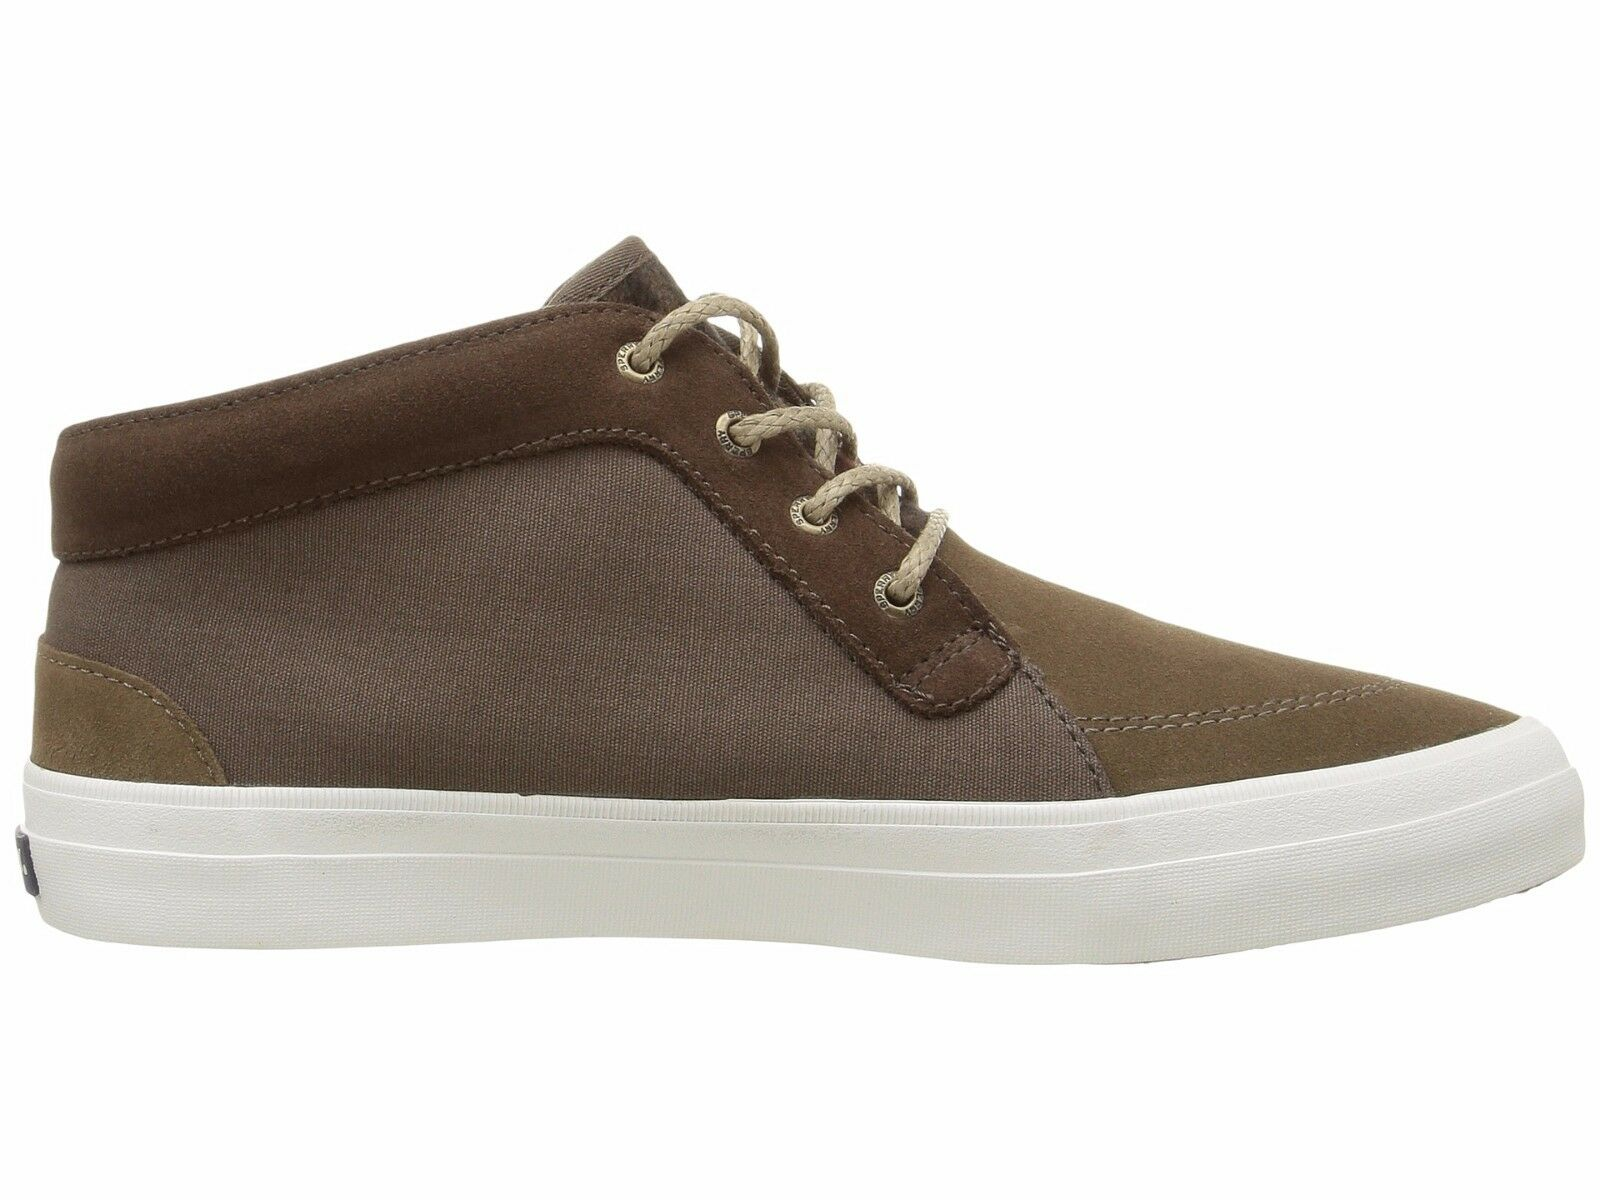 Sperry Sneackerst Top-Sider Crest Knoll Canvas Sneackerst Sperry Booties Taupe Multiple Sizes bcee2c